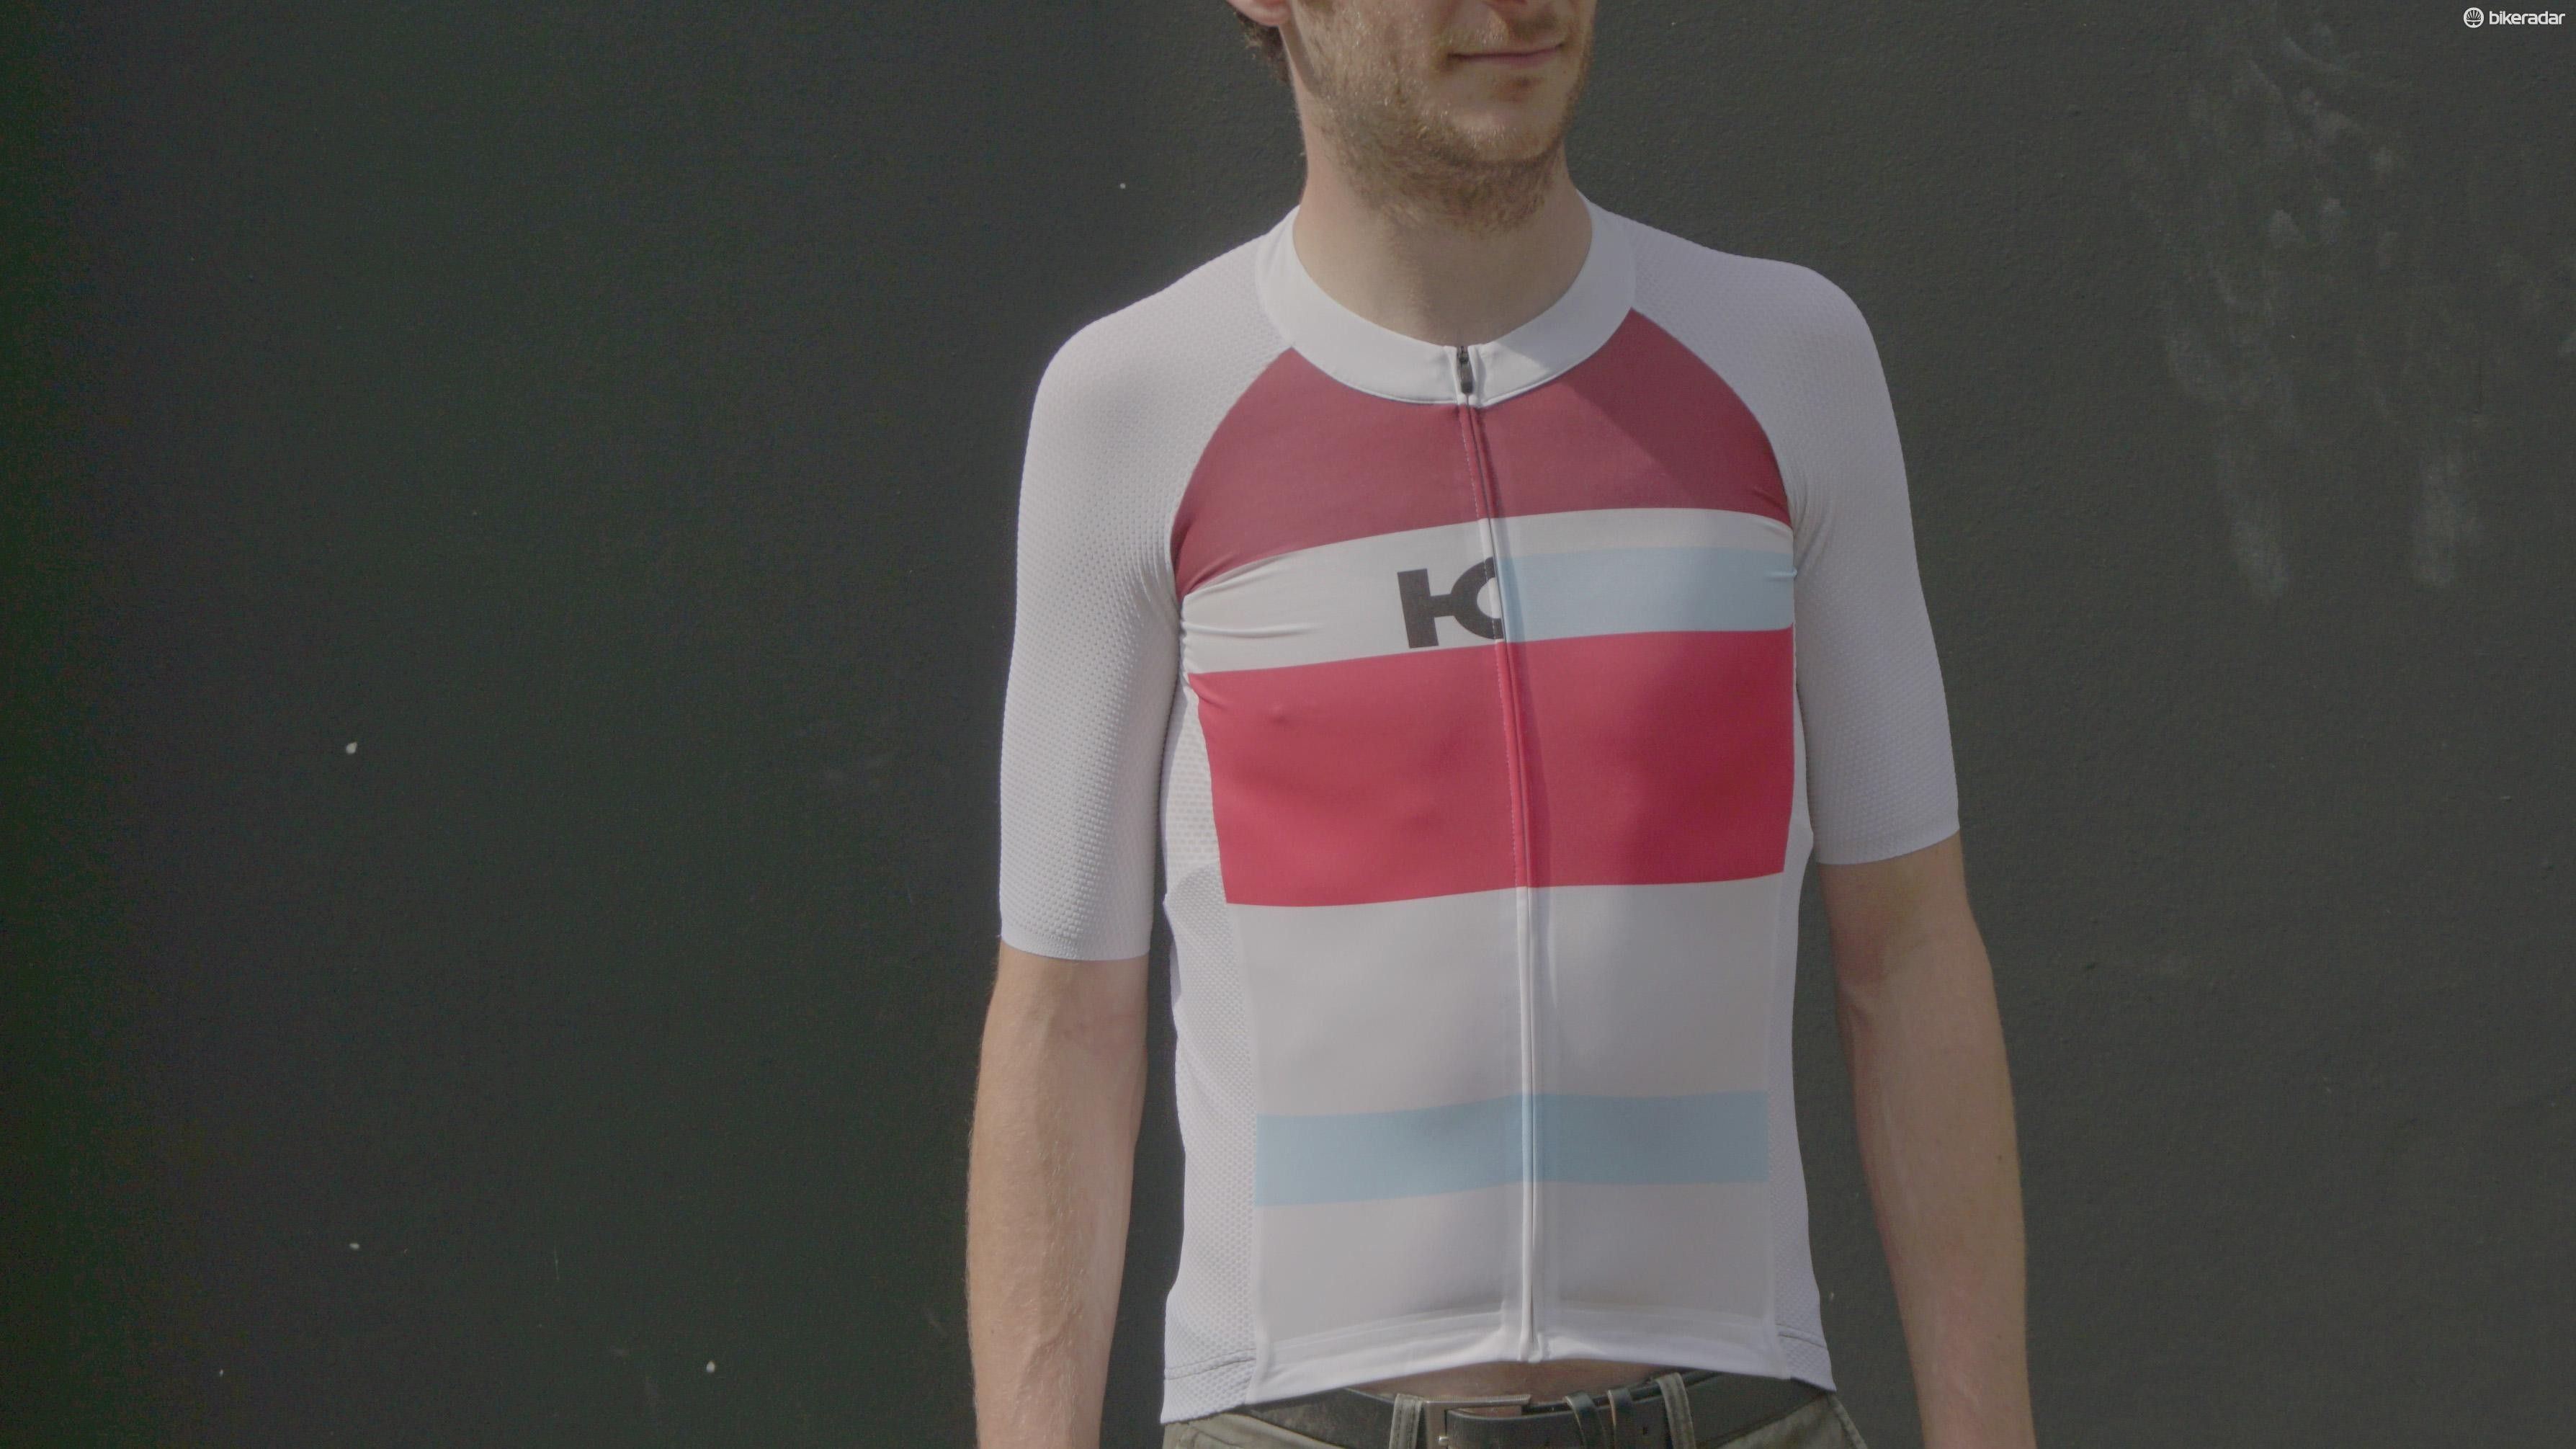 The Katusha jersey is designed to fit very snugly indeed for those aero gains